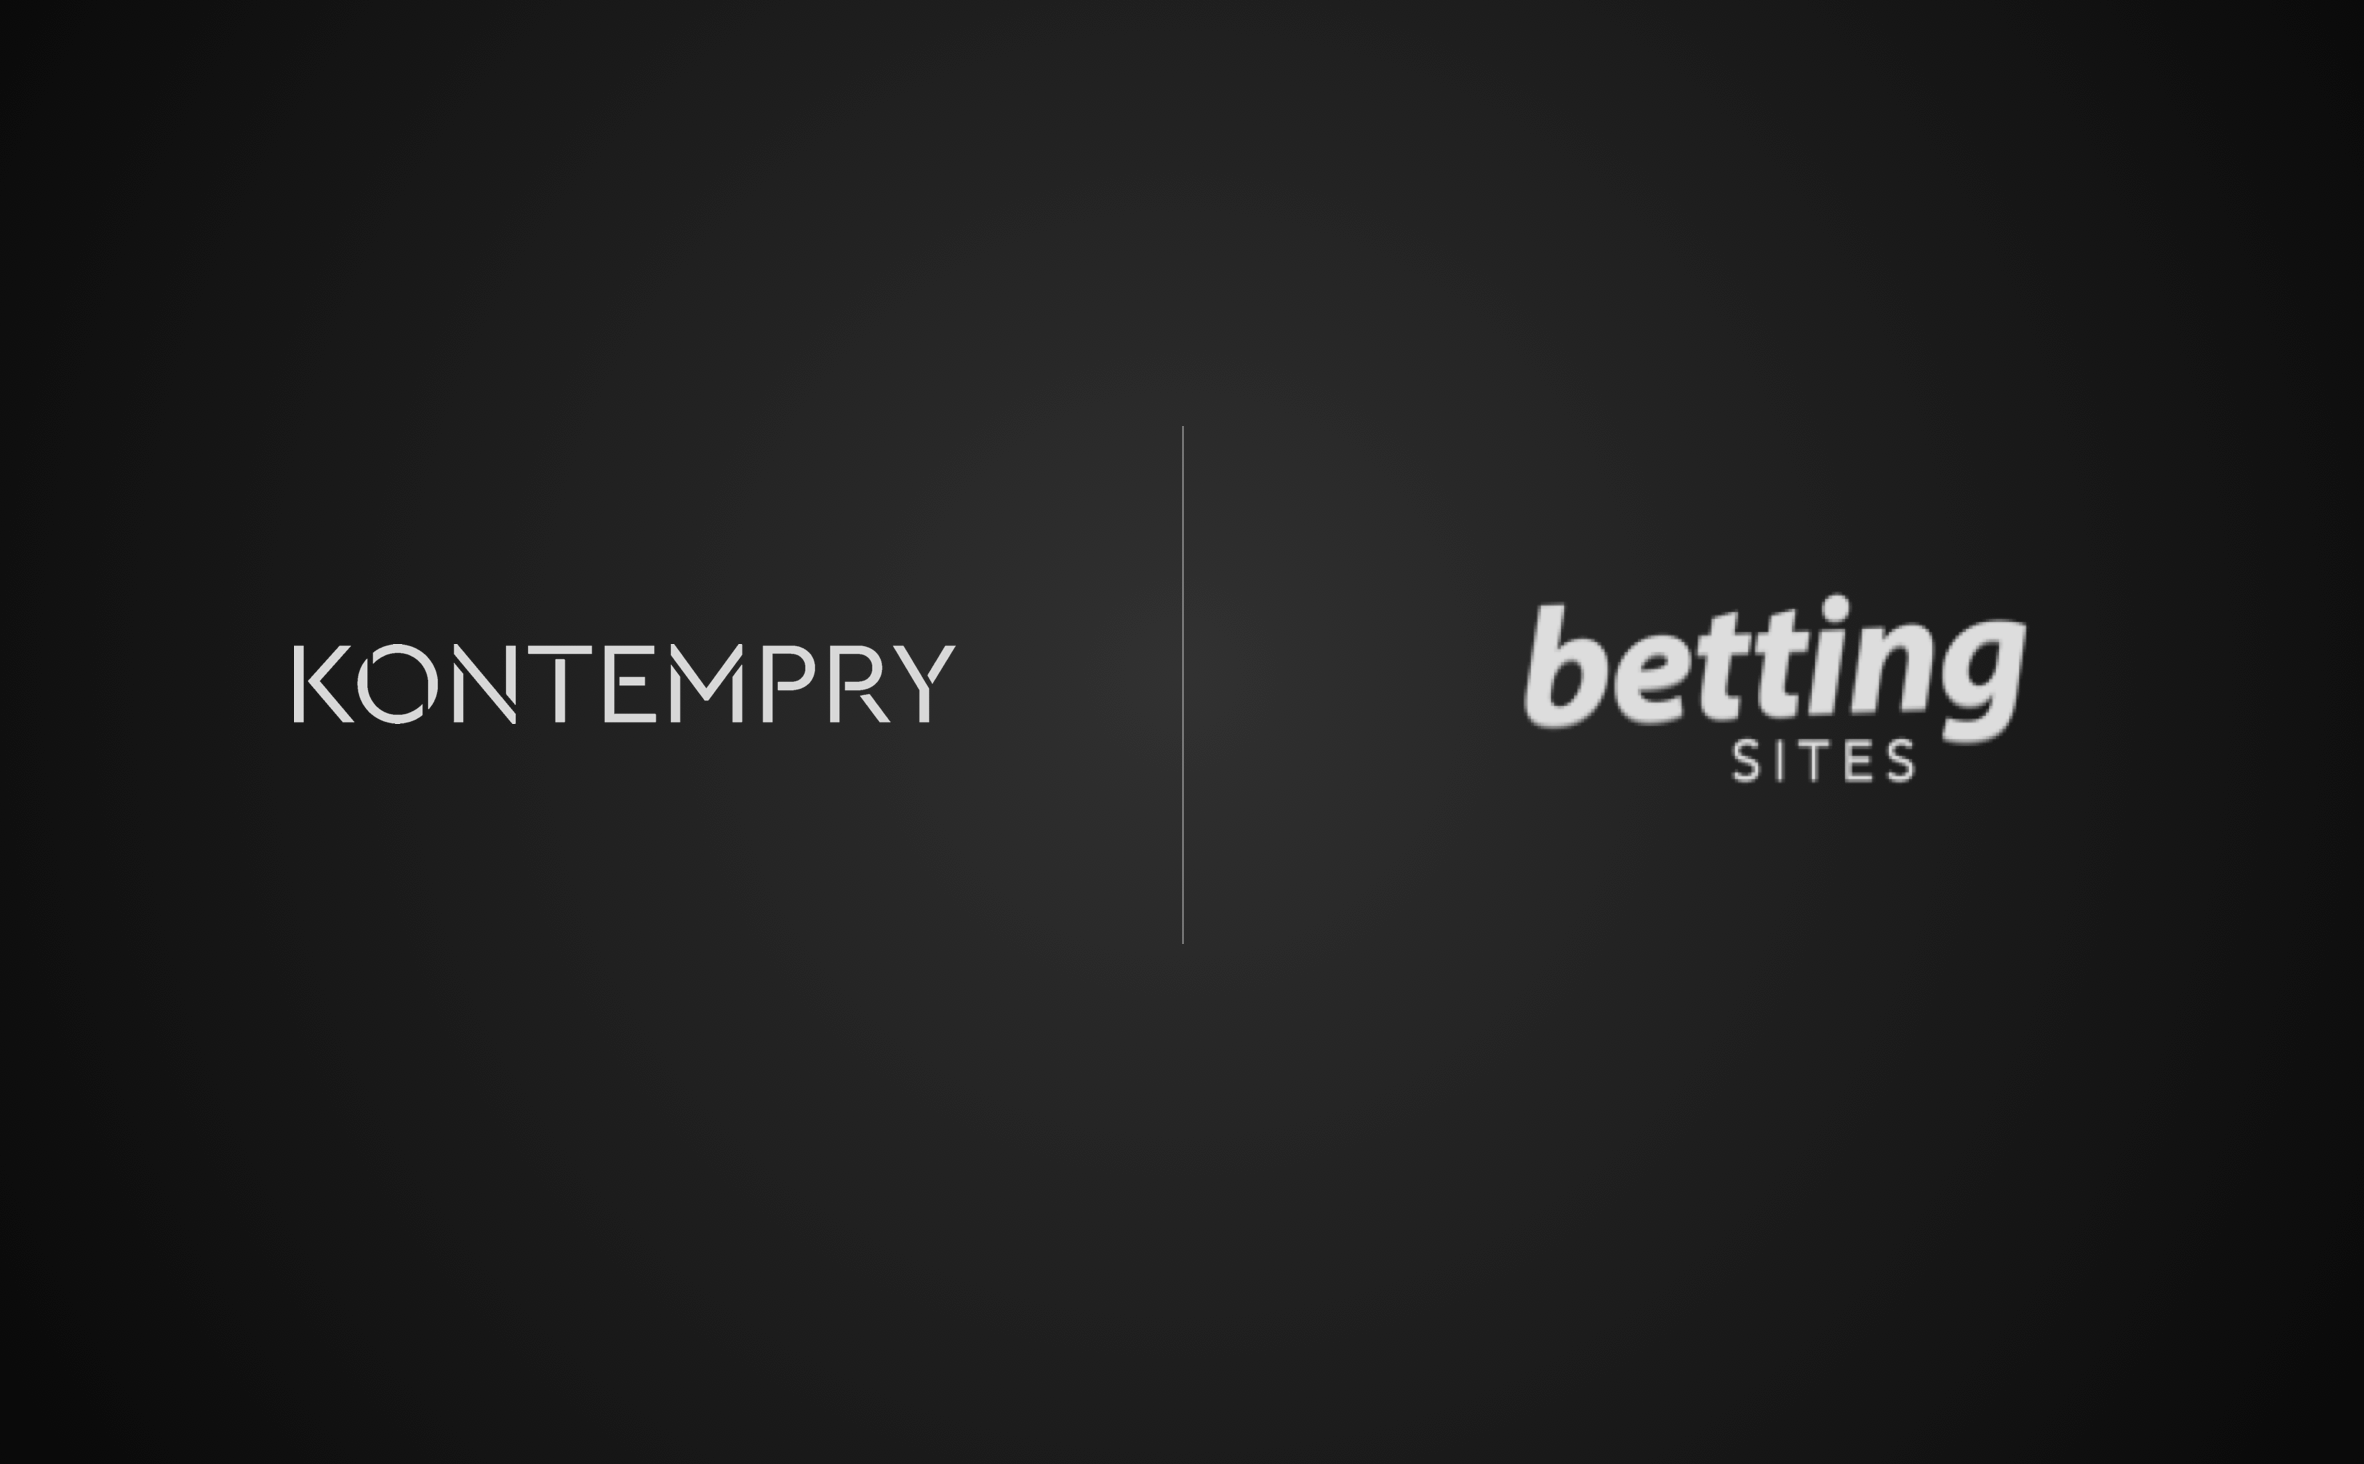 Betting Sites Acquired by Kontempry Ltd for £5.2M